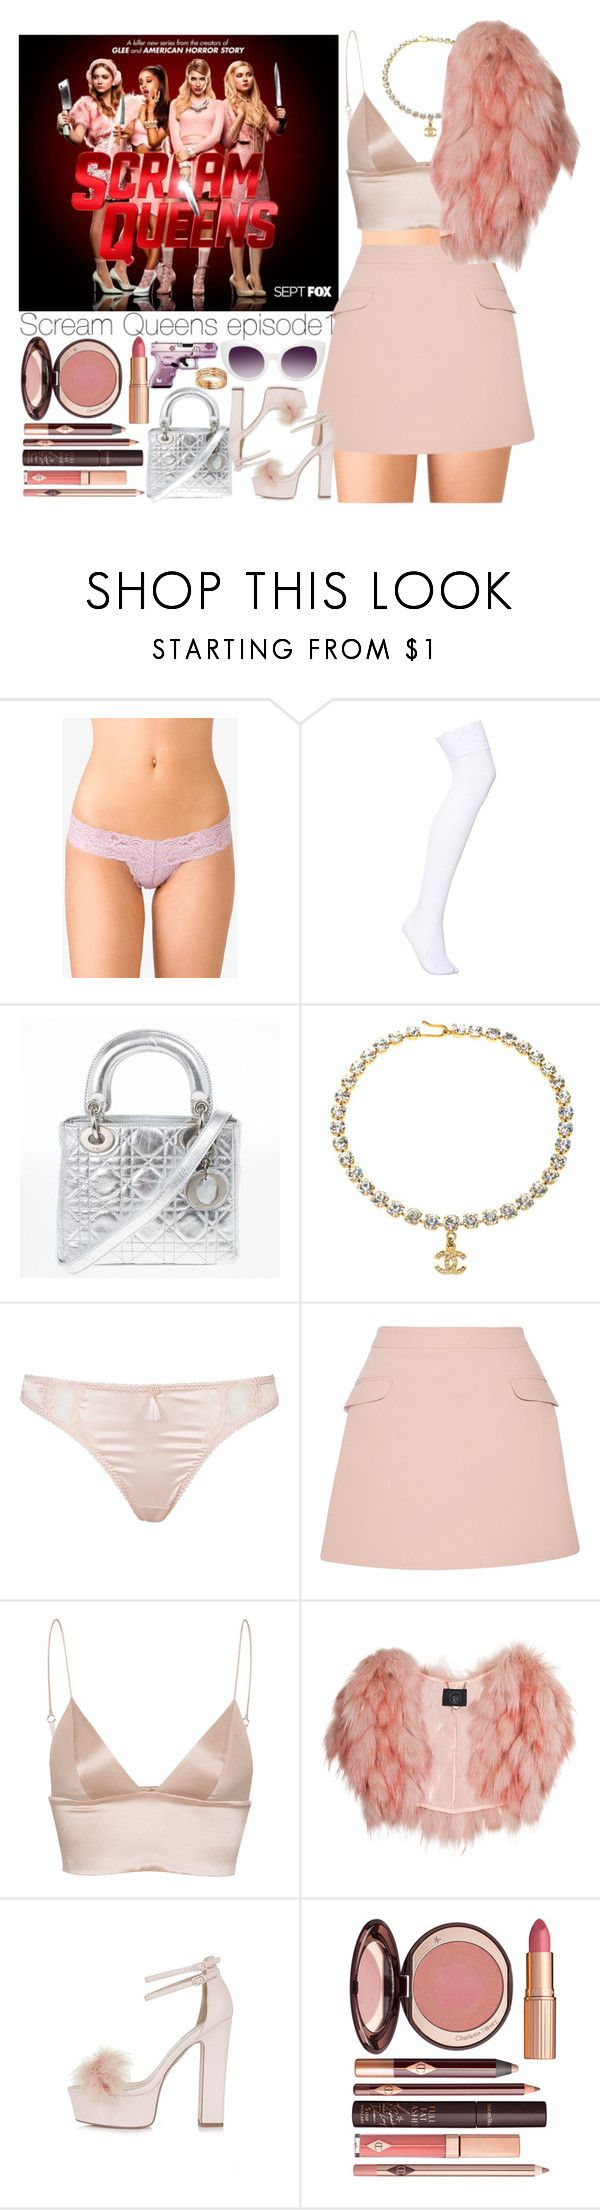 """""""Scream Queens Episode 1"""" by outfitsbynina9 ❤ liked on Polyvore featuring Forever 21, Christian Dior, Chanel, Dita Von Teese, Alice + Olivia, T By Alexander Wang, SLY 010, Topshop, Charlotte Tilbury and Hello Kitty"""